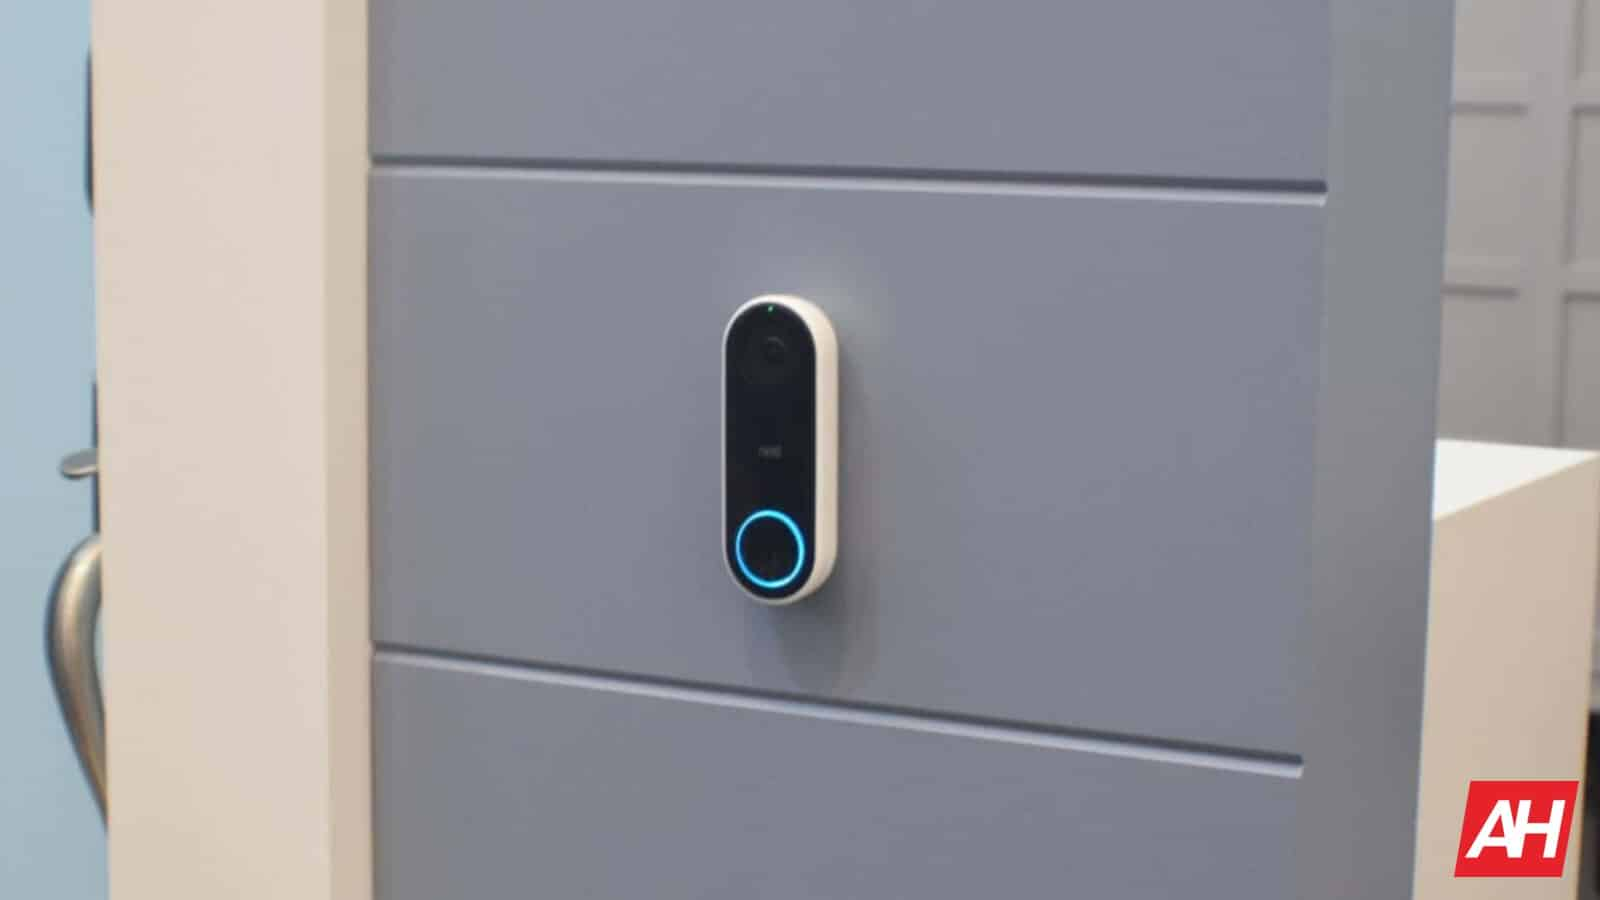 Google Nest Hello Smart Wi-Fi Video Doorbell - BuyDig